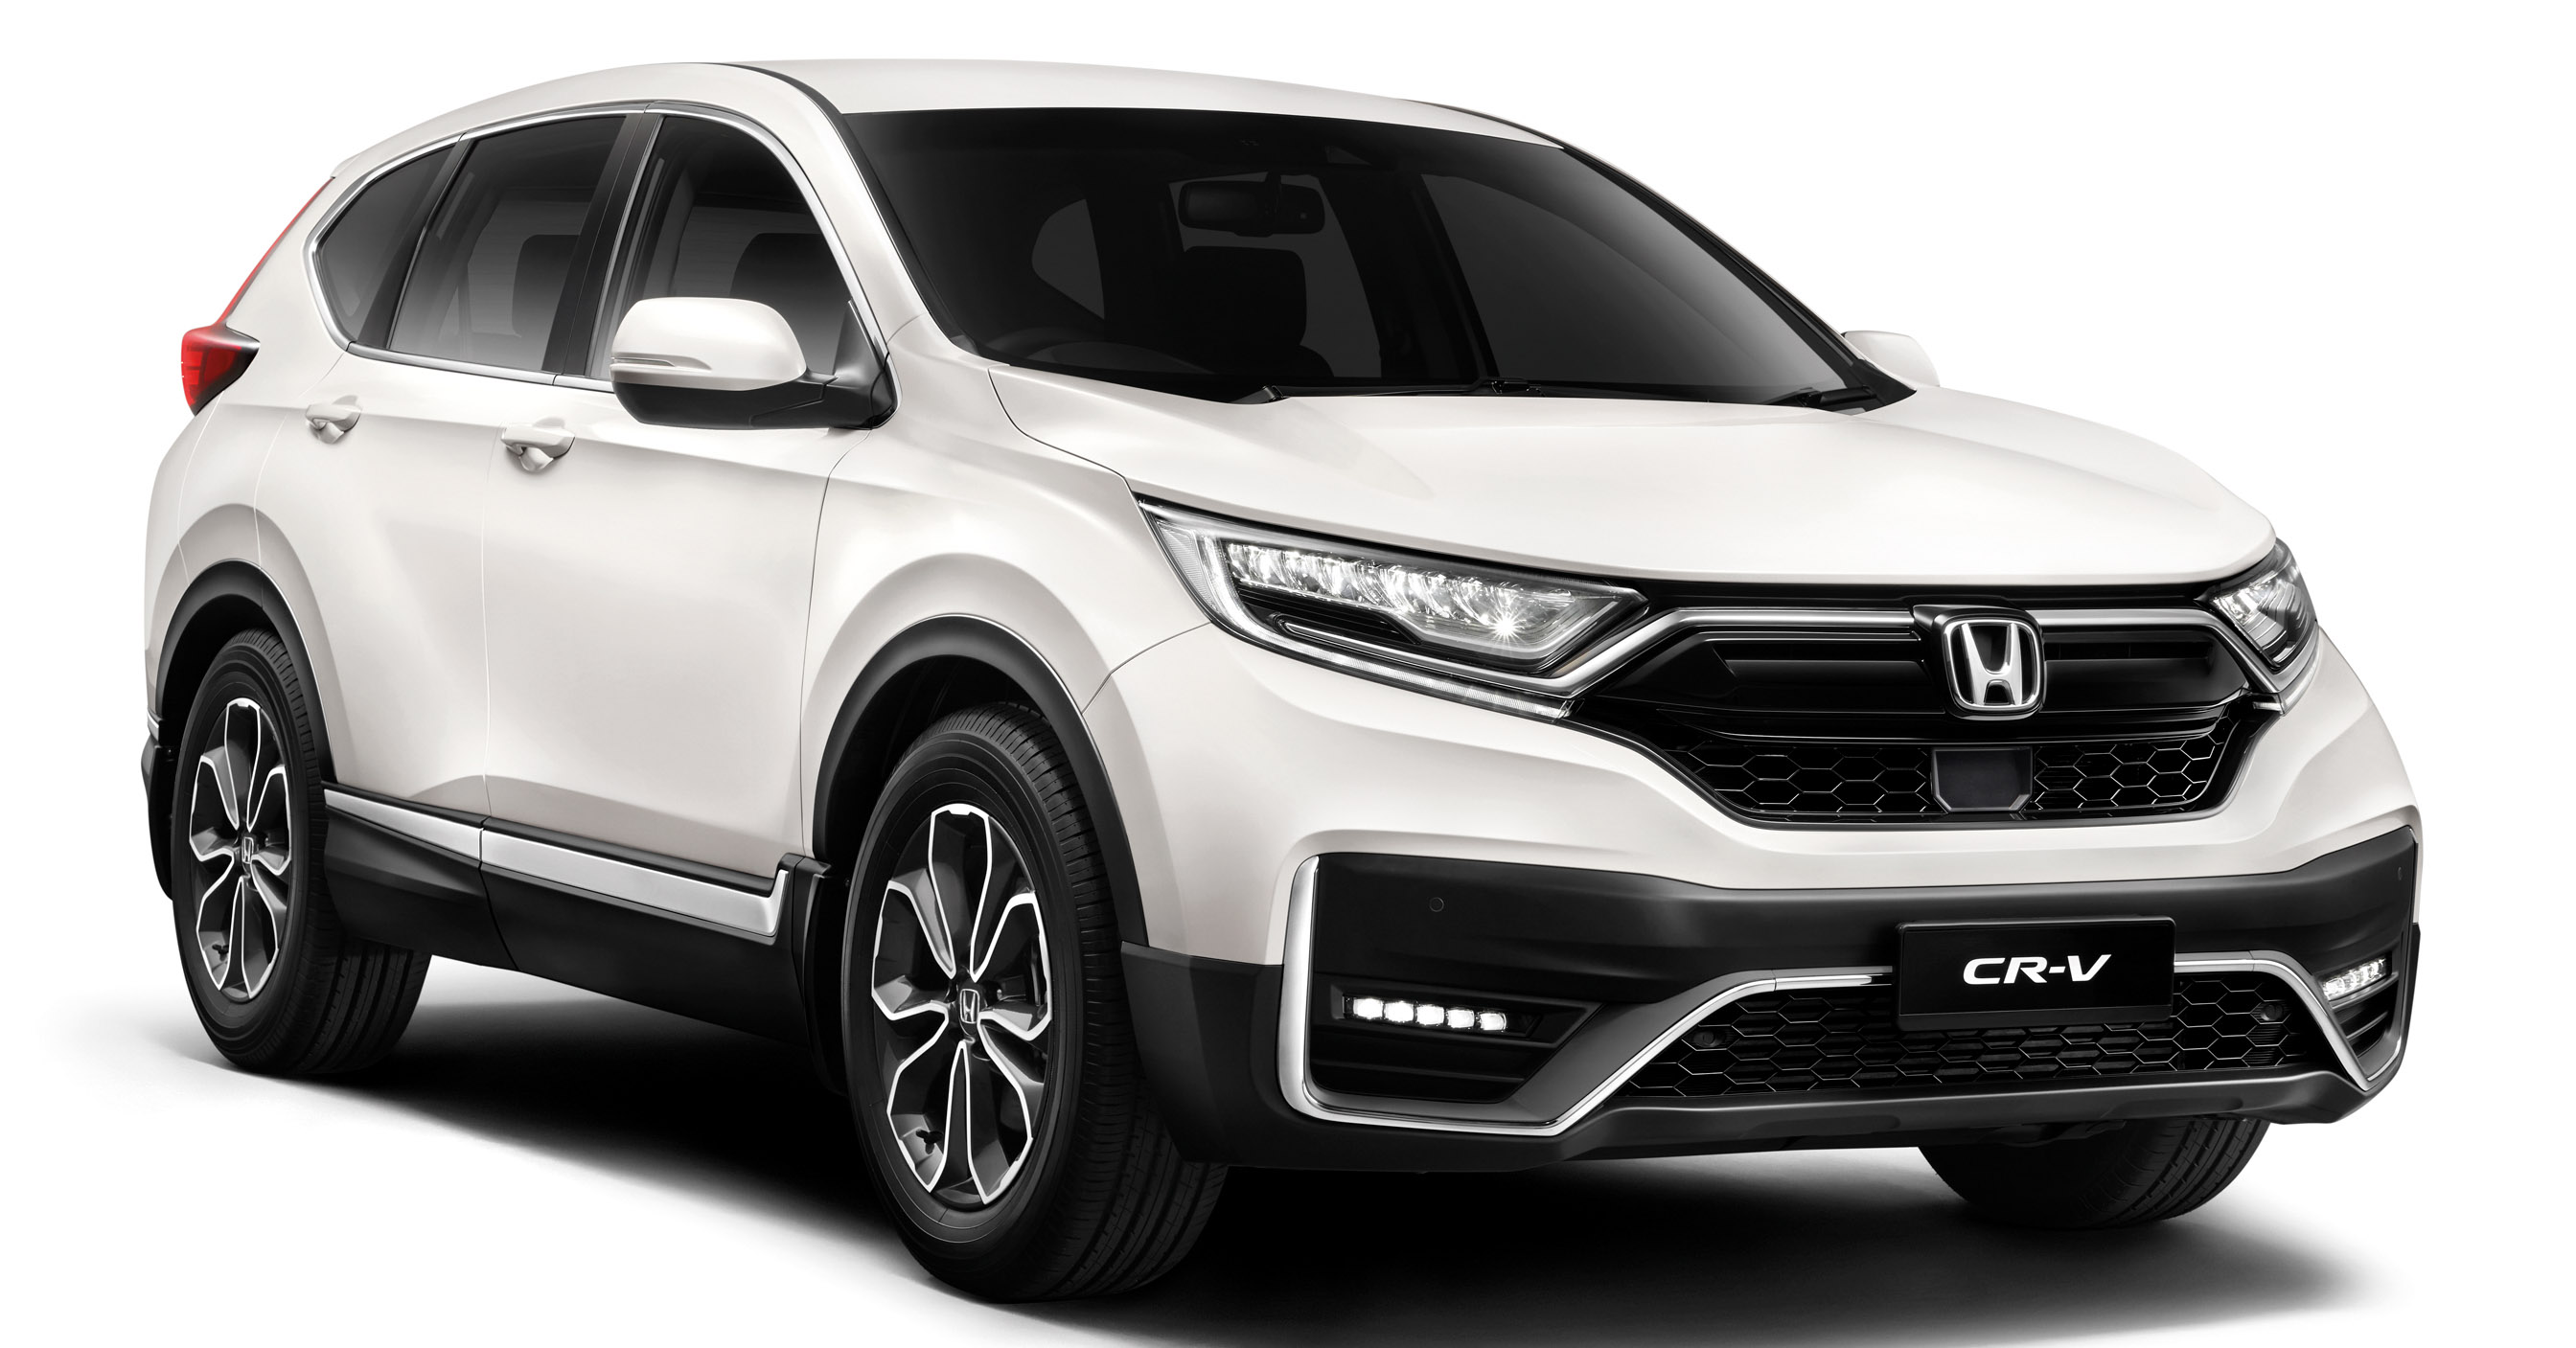 2020 Honda Cr V Facelift Launched In Malaysia Two 1 5l Turbo One 2 0l Na New Styling Kit From Rm140k Paultan Org